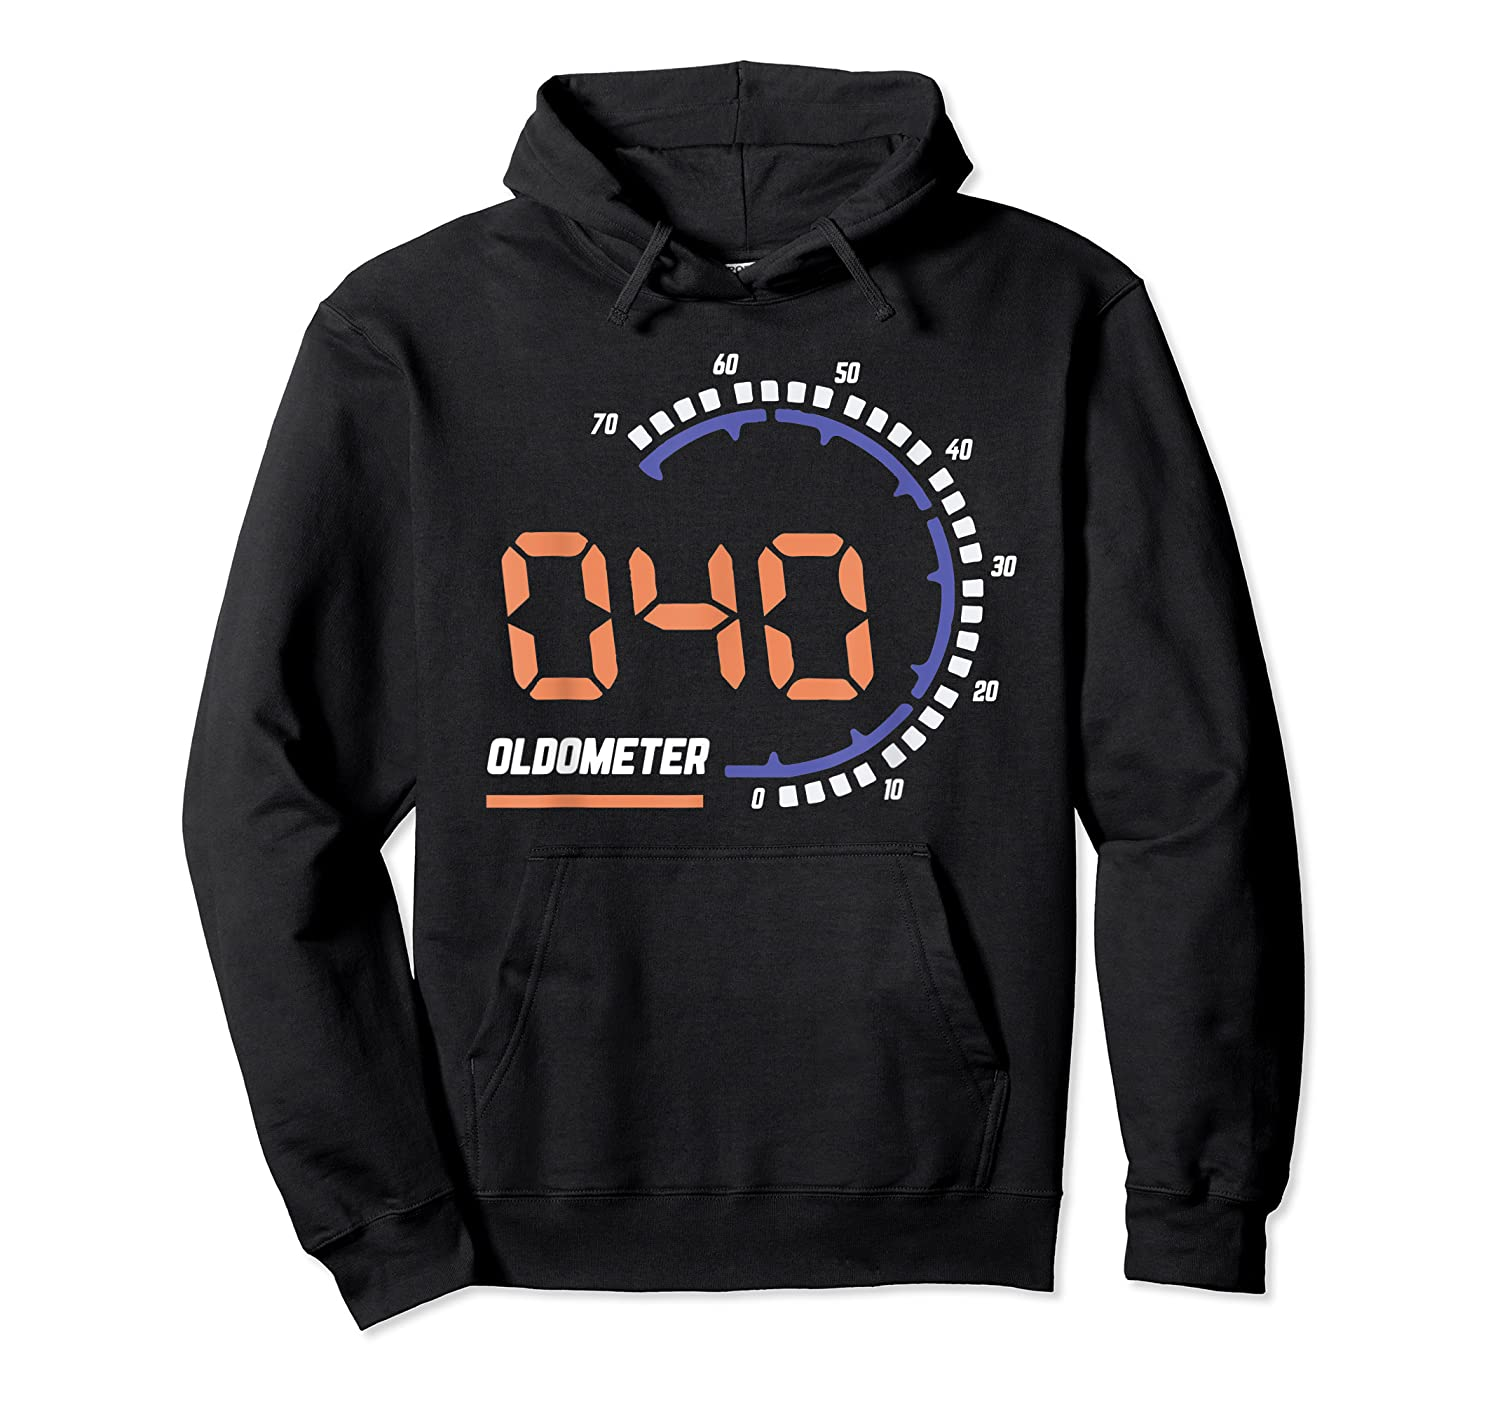 Oldometer 40 T-shirt 40th Birthday Gift Funny T-shirt Unisex Pullover Hoodie